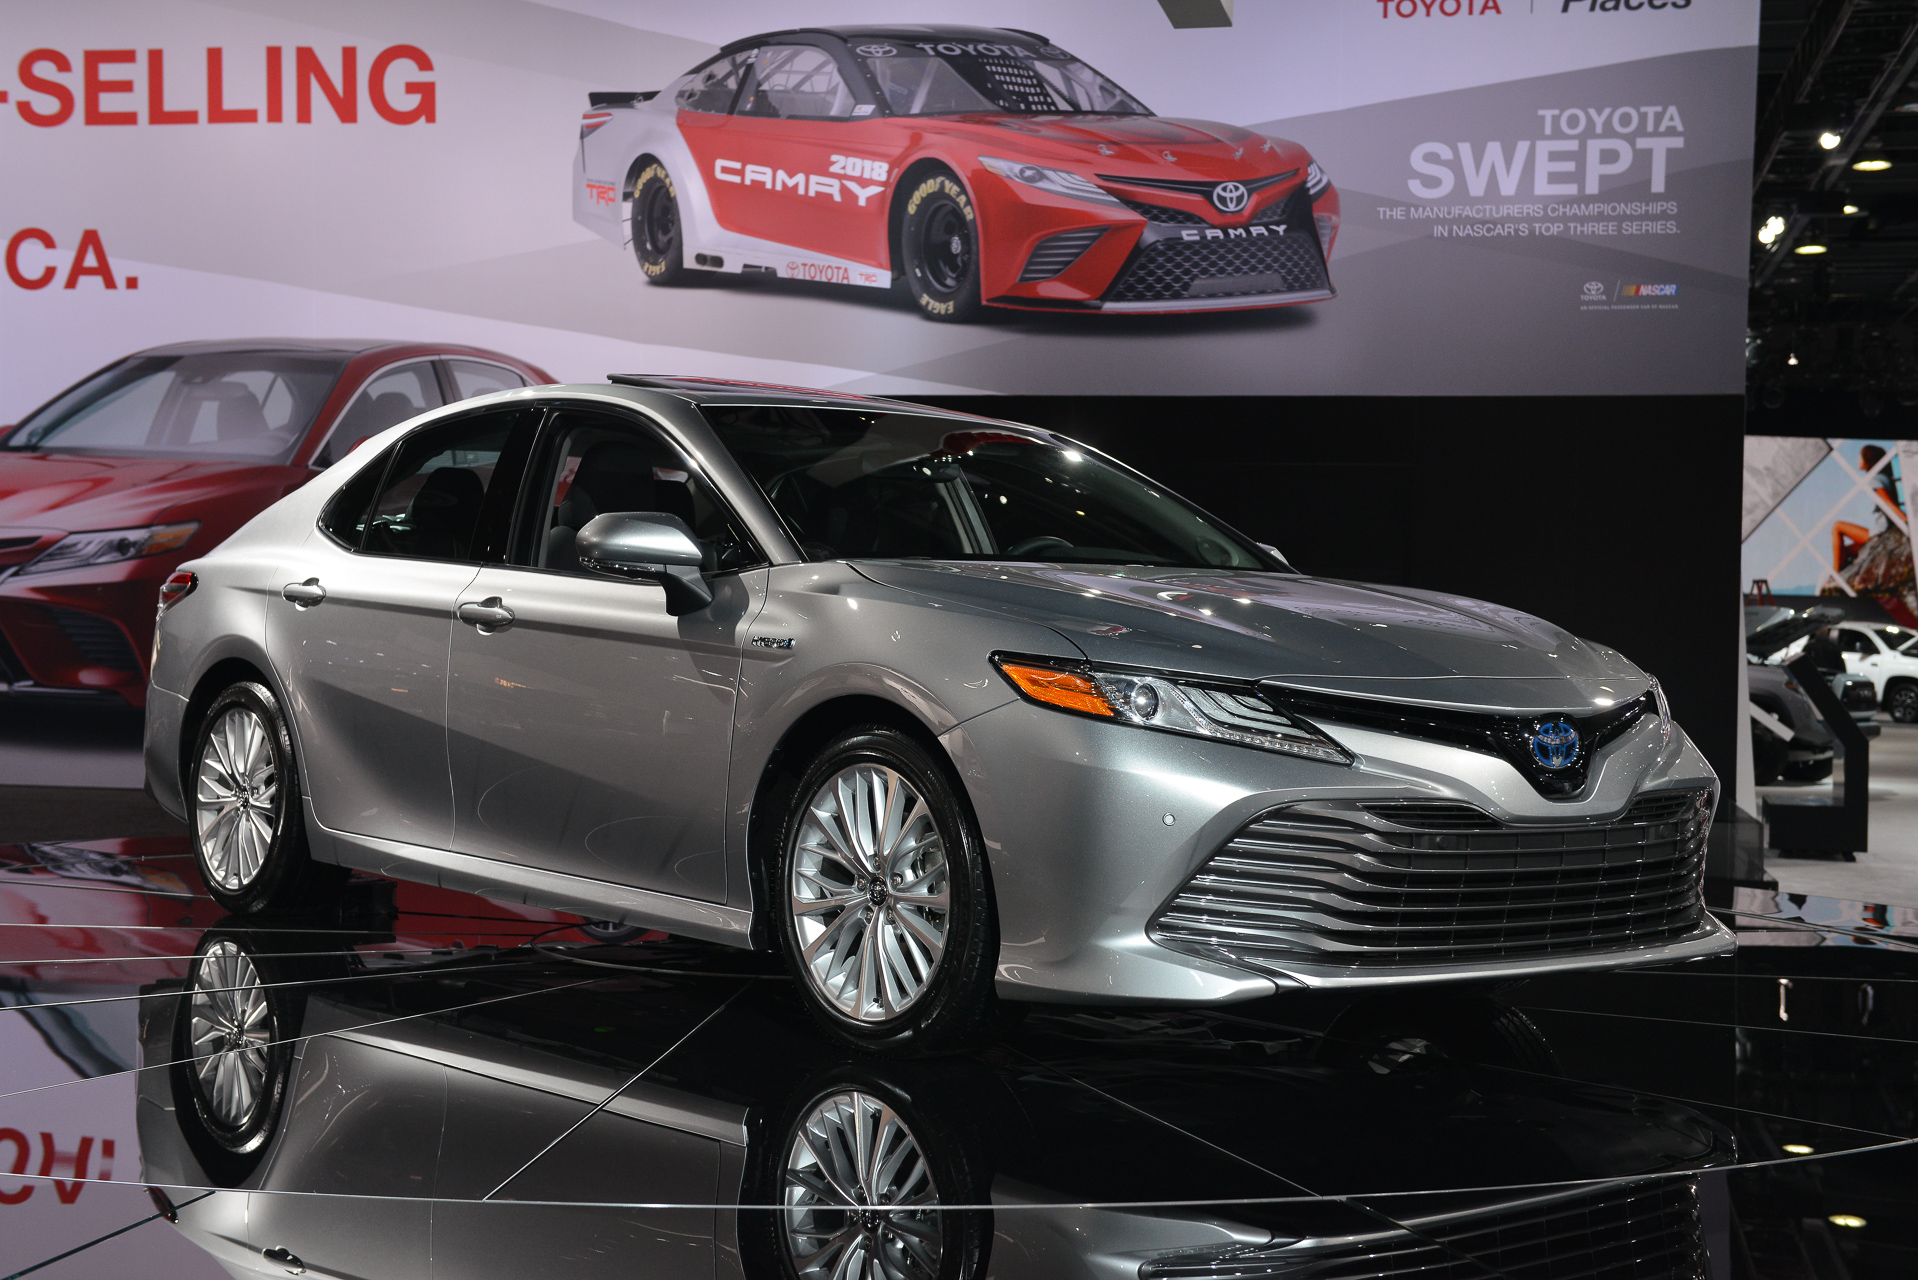 2018 Toyota Camry Hybrid: two different battery packs ...